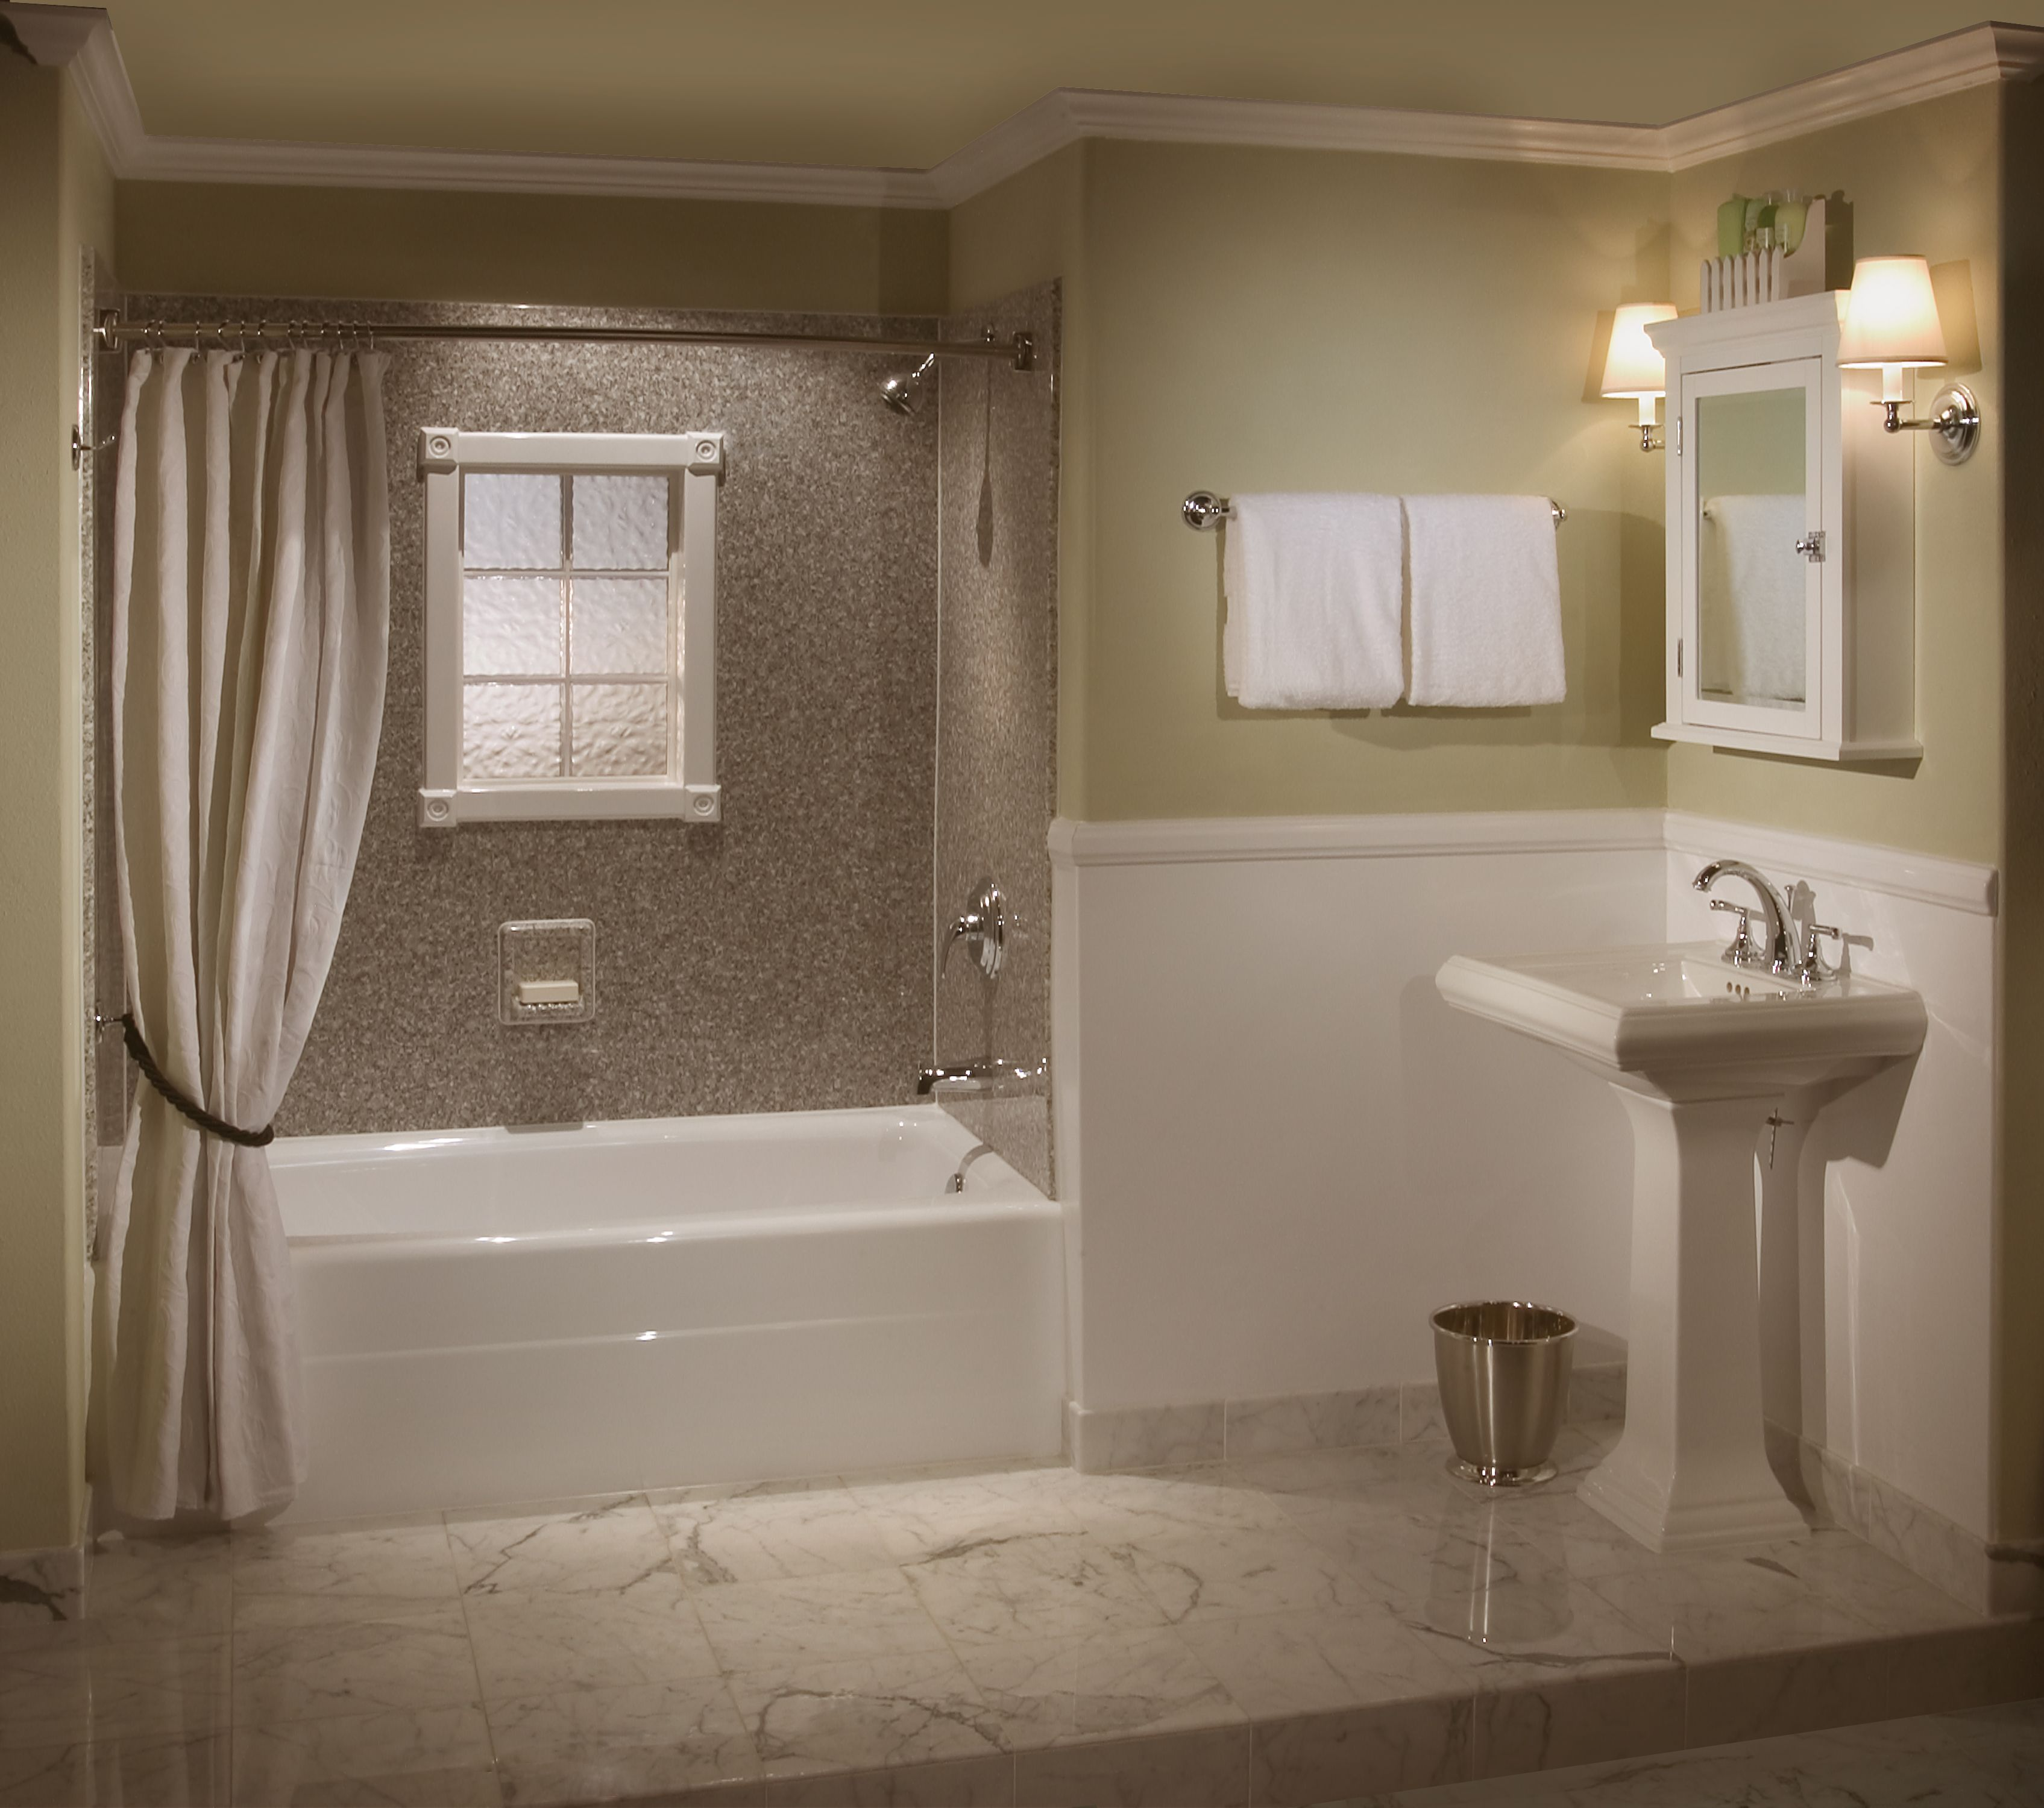 Engaging Bathroom Remodel Idea With White Pedestal Sink